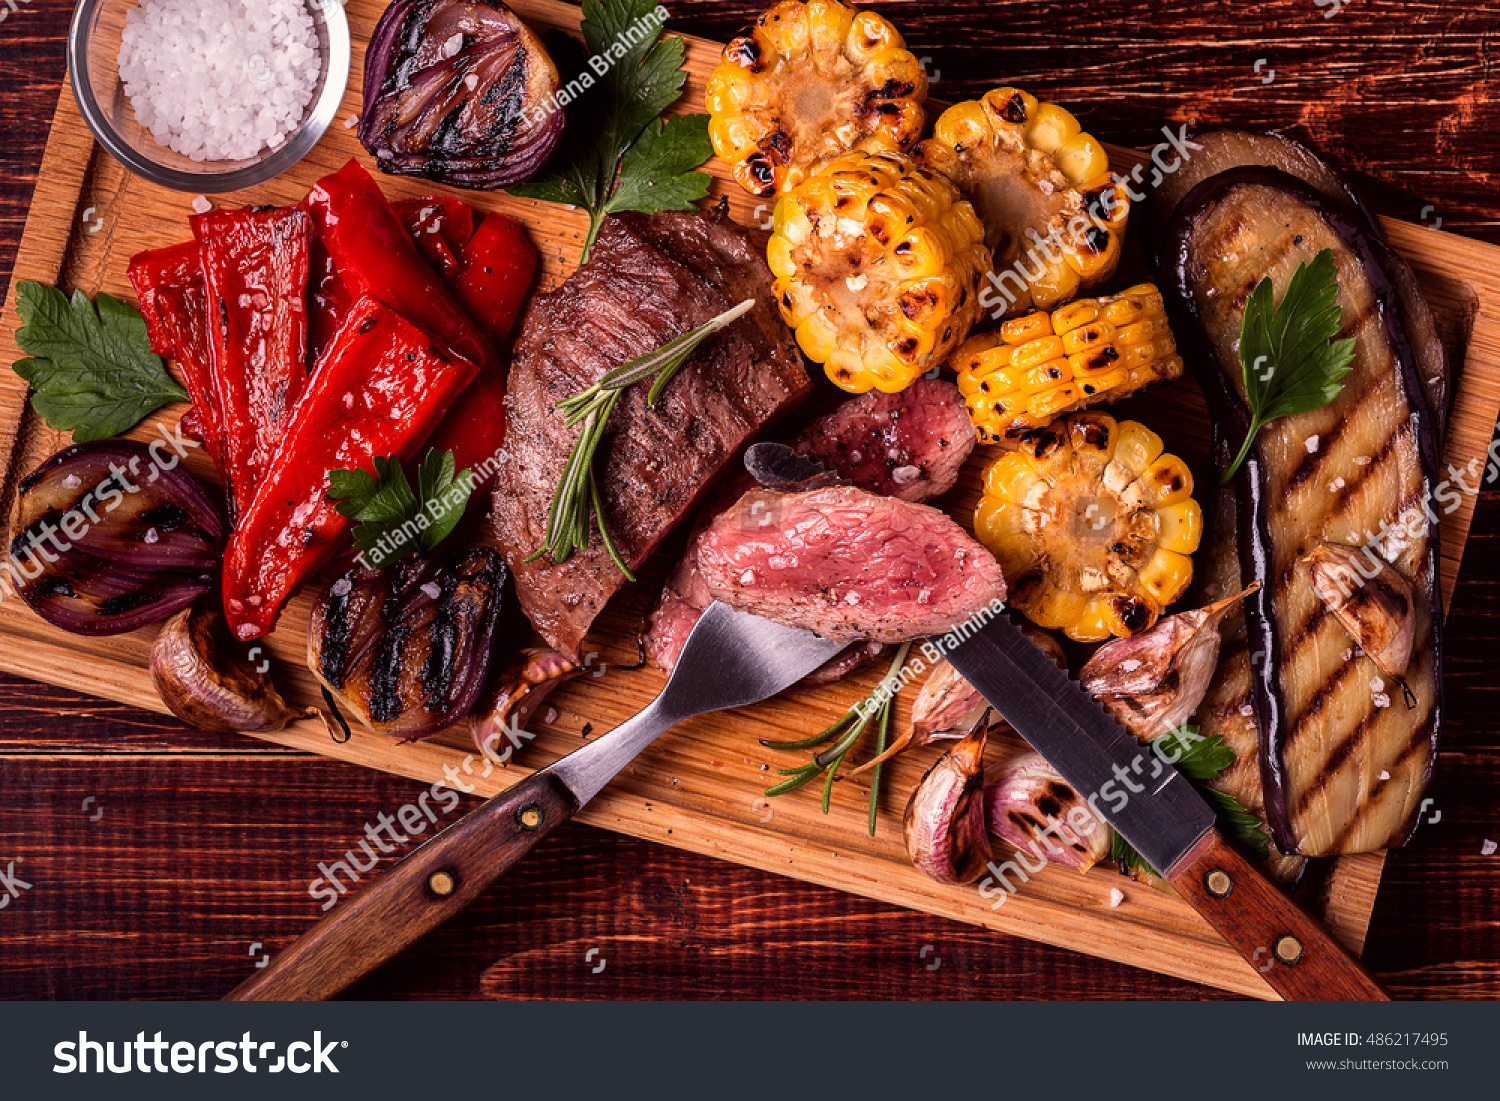 Grilled steak and vegetables on cutting board, top view. #486217495